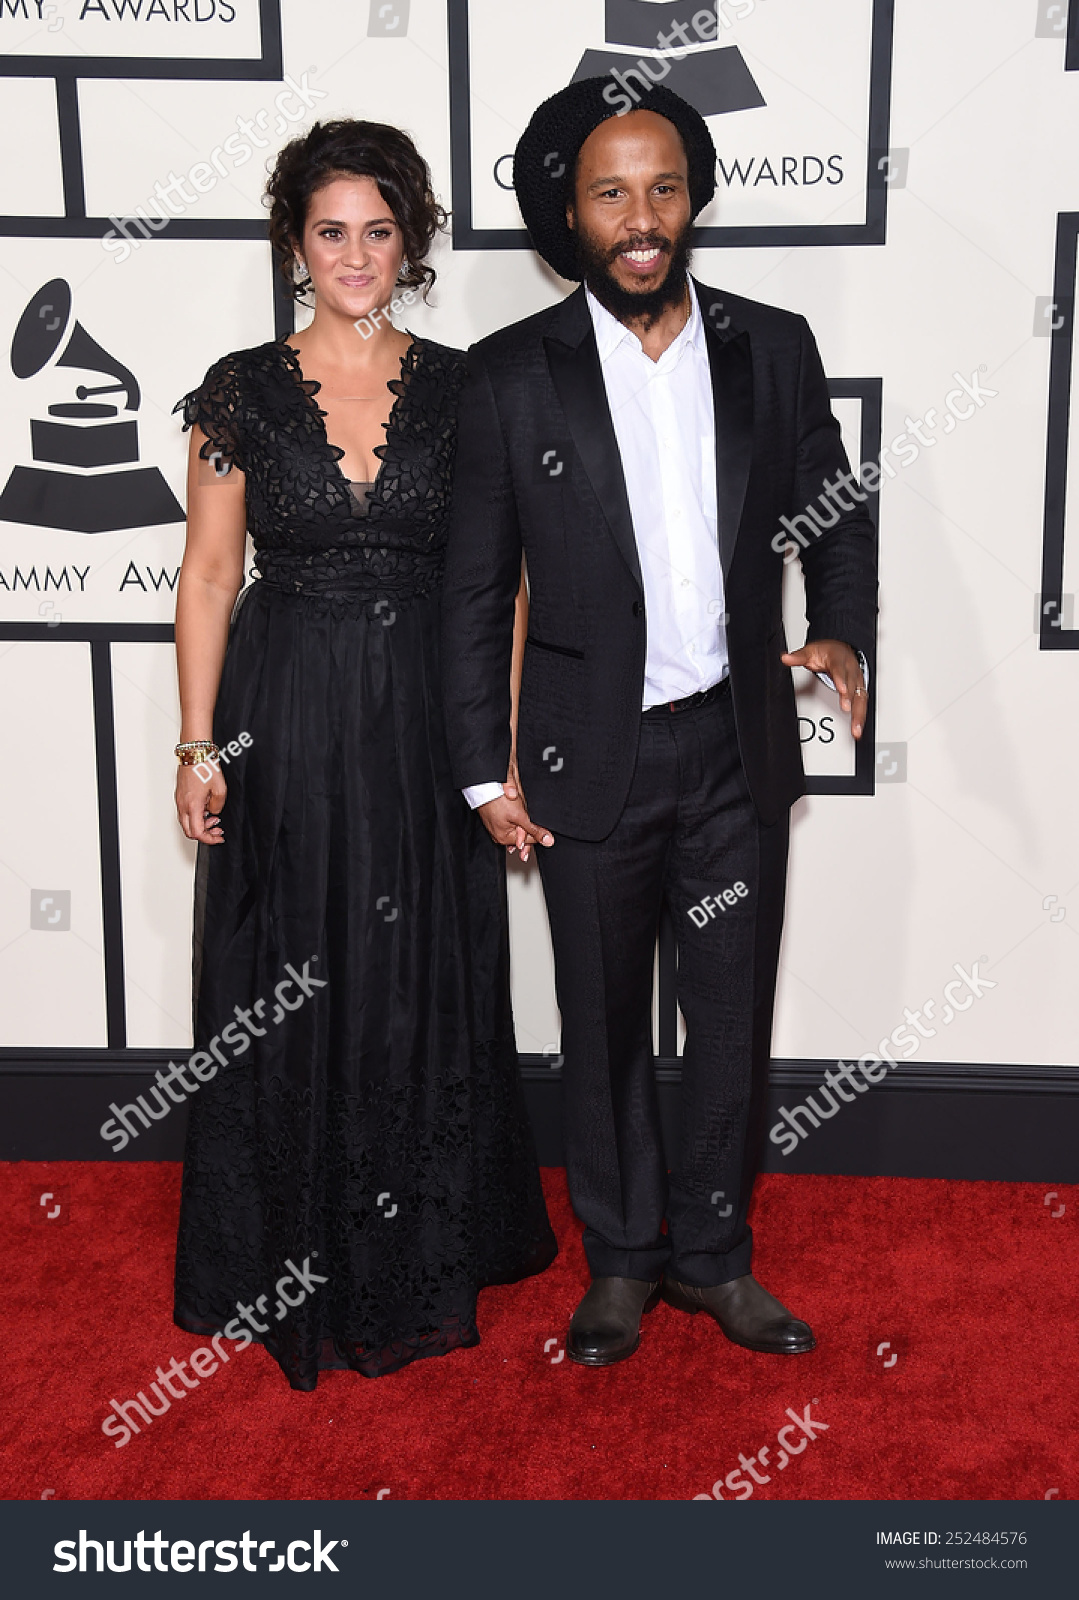 LOS ANGELES FEB 08 Ziggy Marley arrives to the Grammy Awards 2015 on February 8 2015 in Los Angeles CA